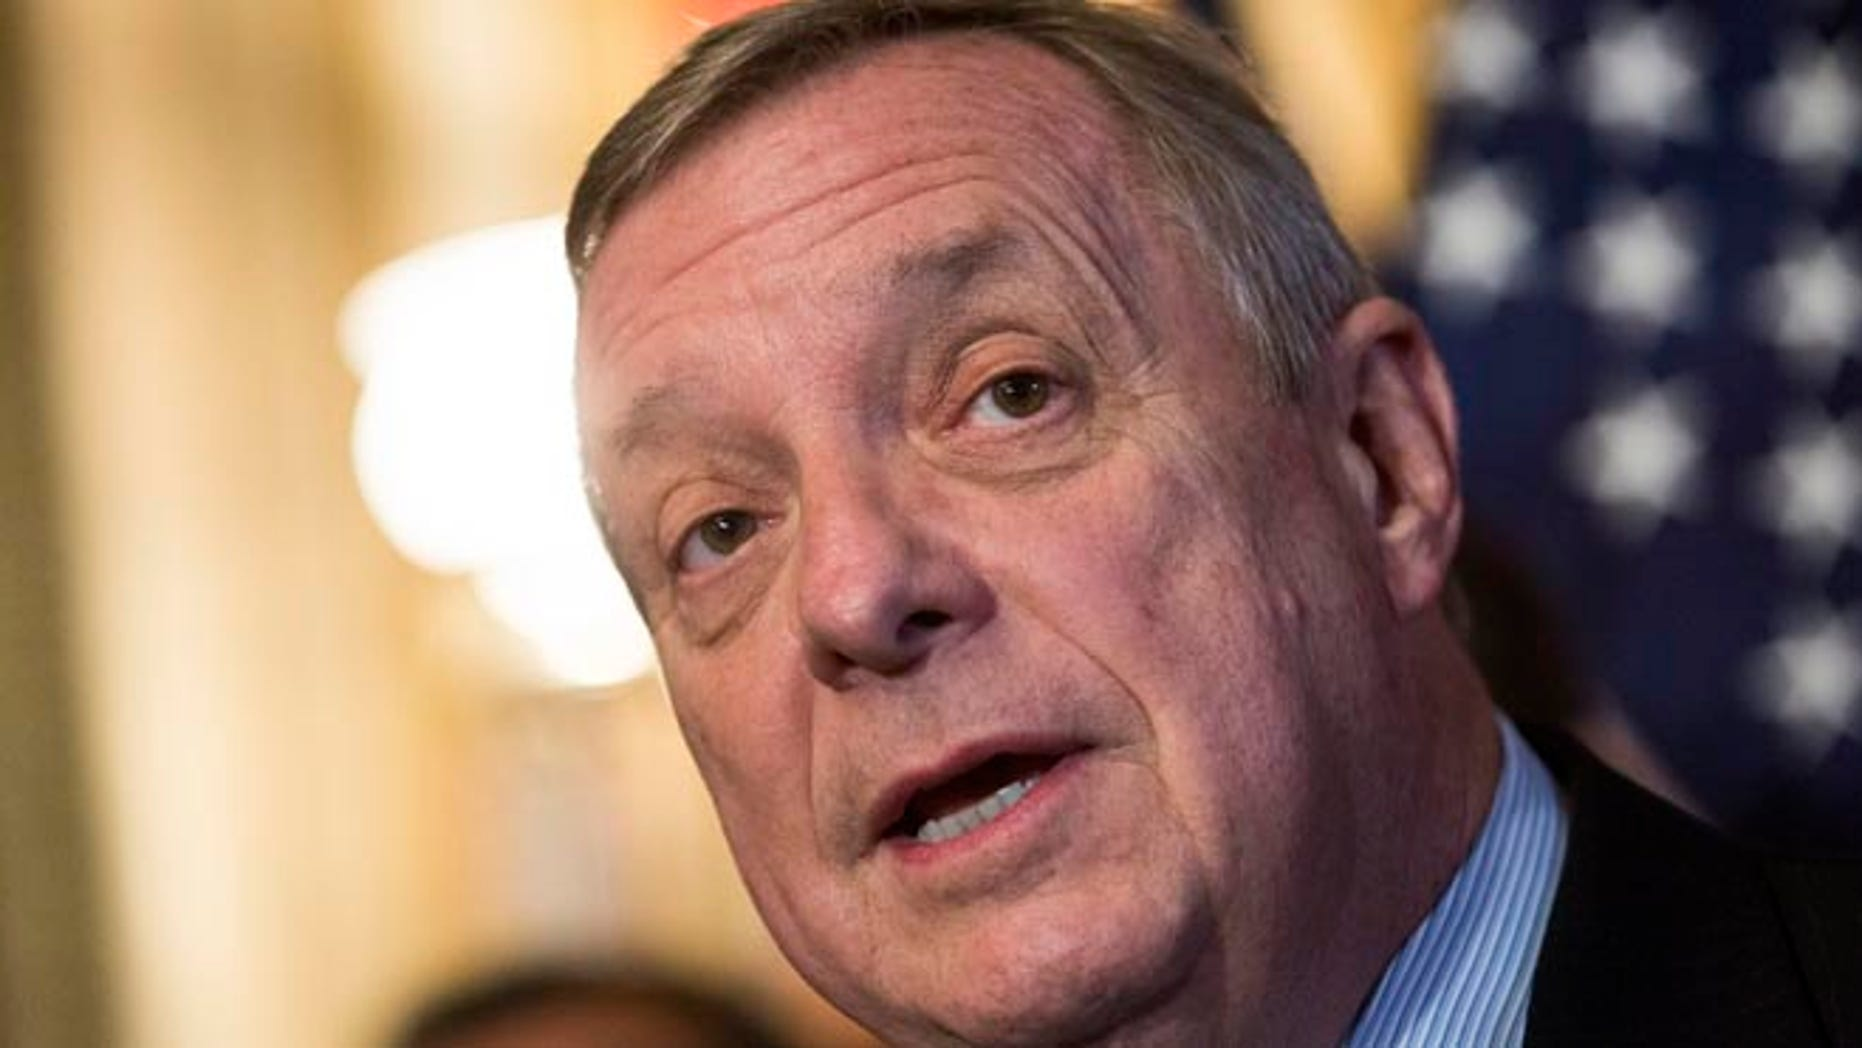 WASHINGTON, DC - DECEMBER 10: Sen. Dick Durbin (D-IL) speaks during a news conference to discuss U.S. President Barack Obama's executive order on immigration, on Capitol Hill, December 10, 2014 in Washington, DC. President Obama traveled to Nashville, Tennessee on Tuesday, where he defended his actions on immigration and again called on Congress to pass an immigration bill. (Photo by Drew Angerer/Getty Images)